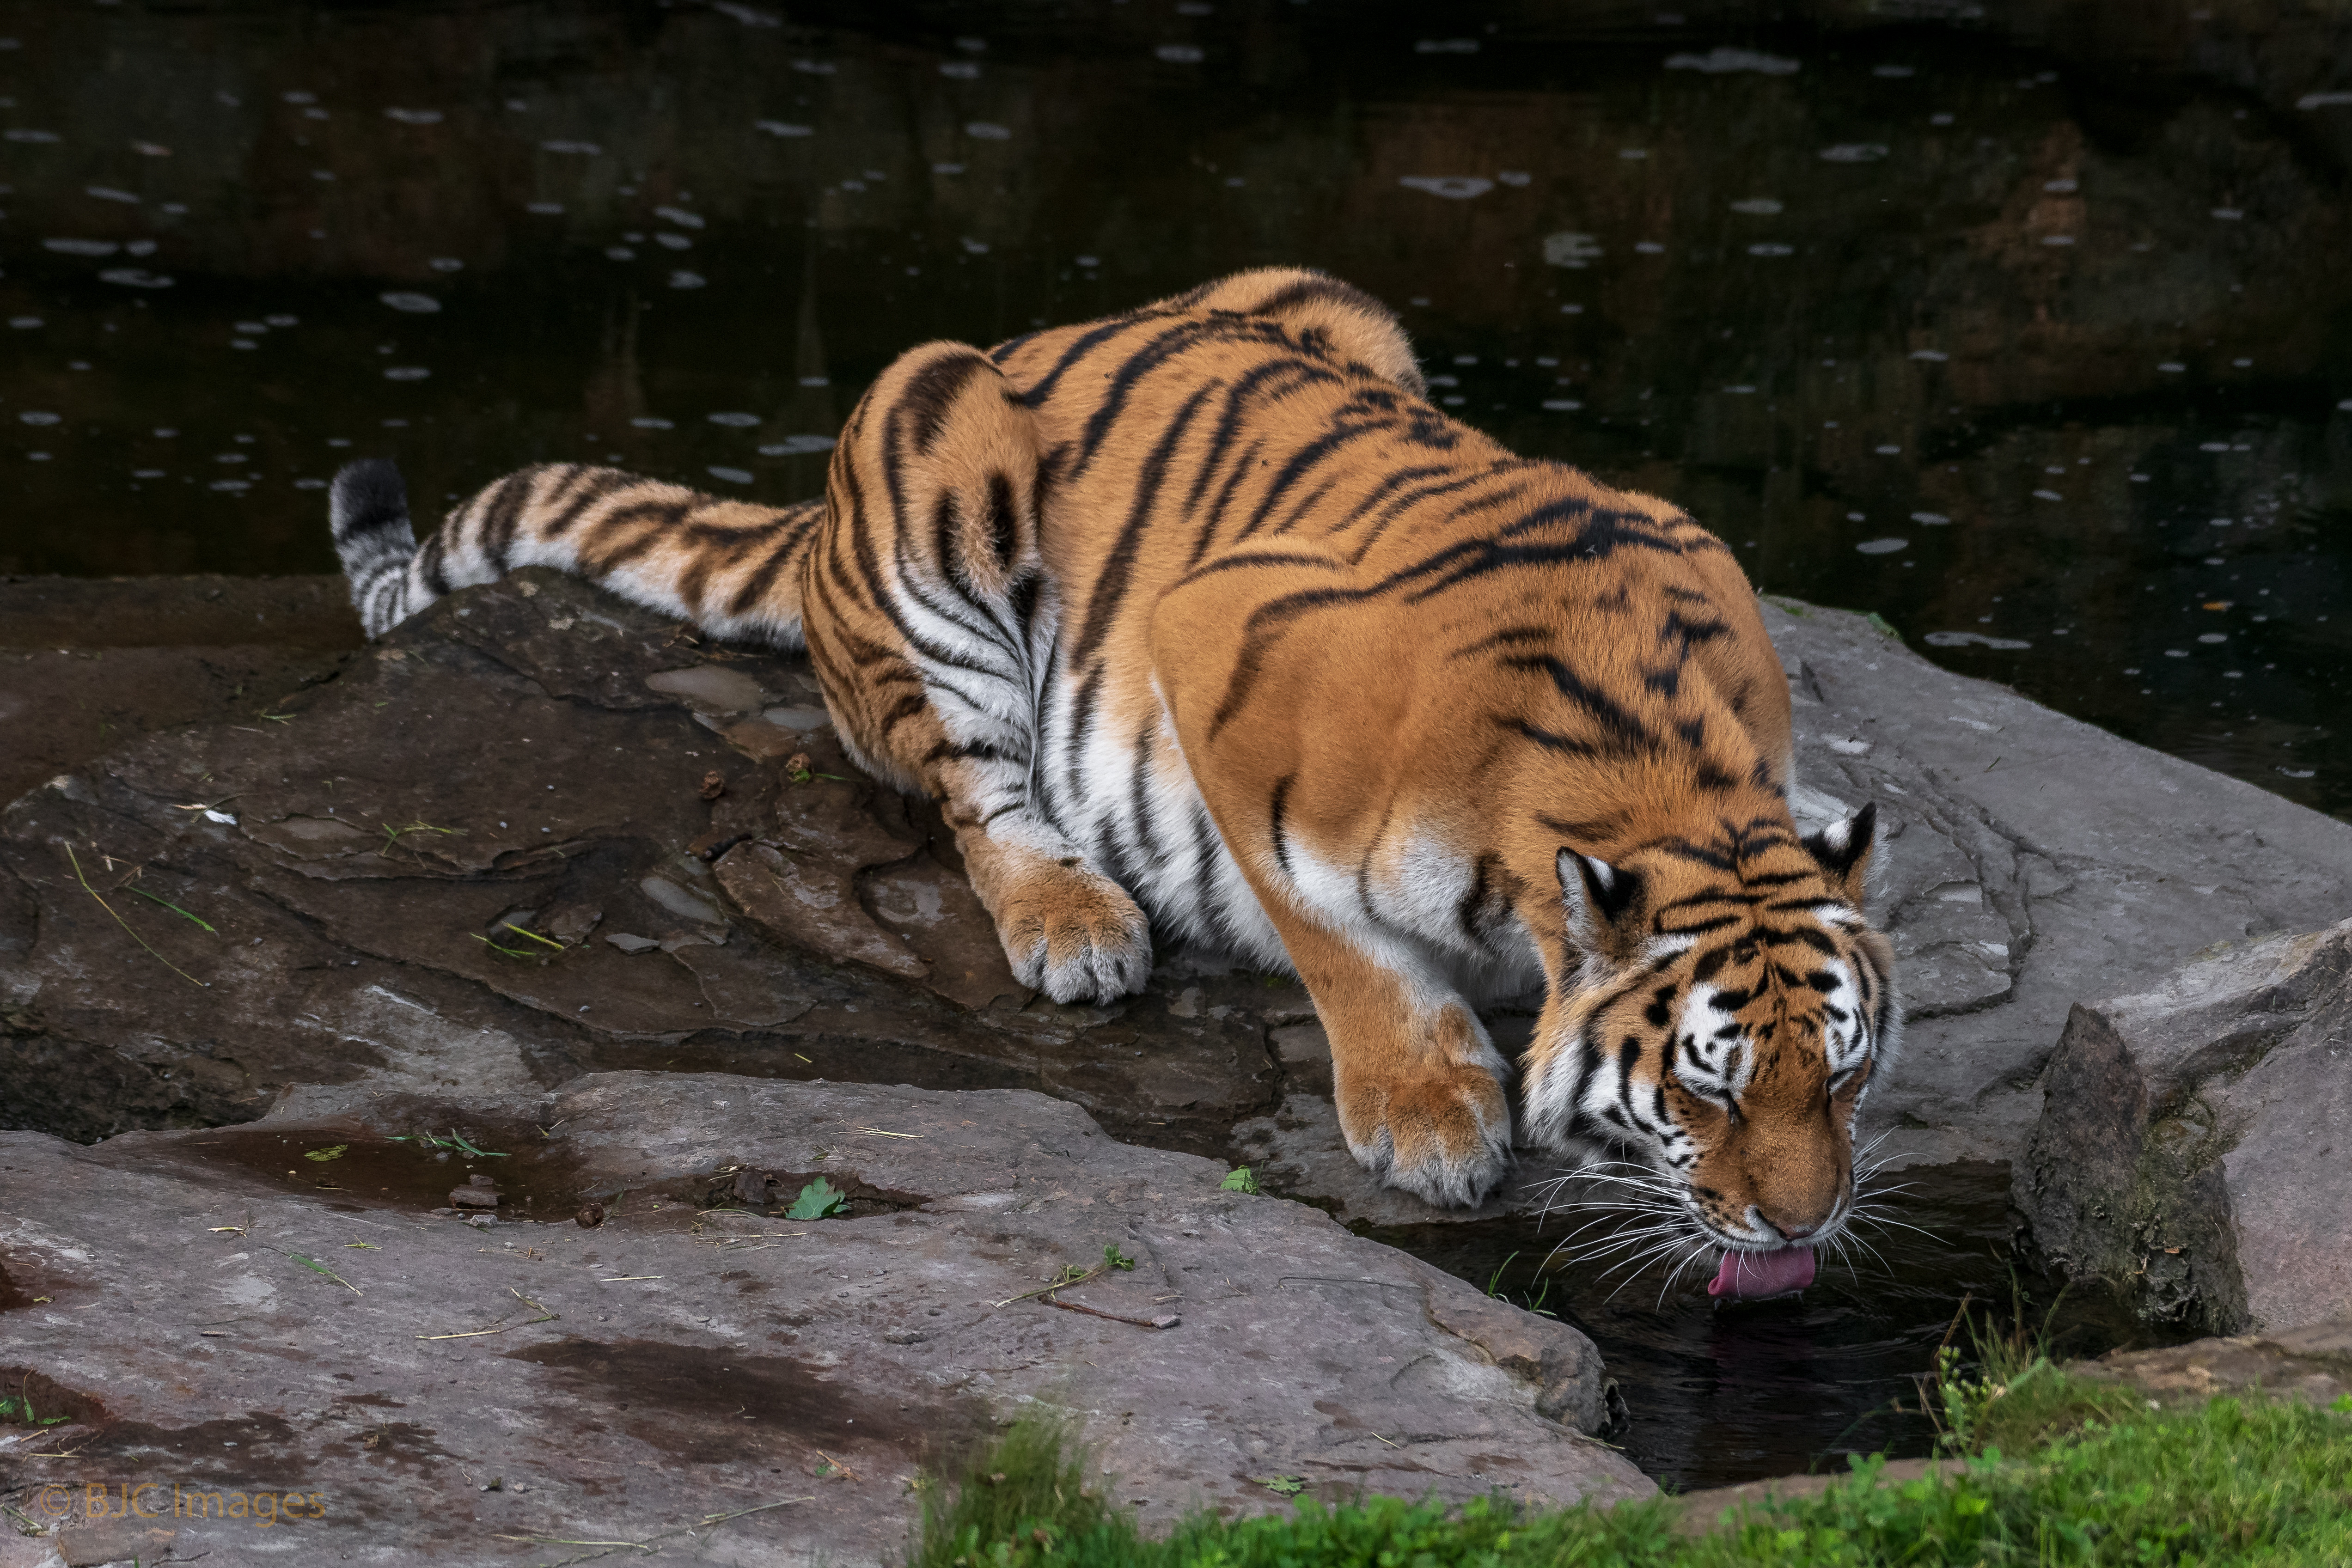 96630 download wallpaper Animals, Tiger, Protruding Tongue, Tongue Stuck Out, Big Cat screensavers and pictures for free